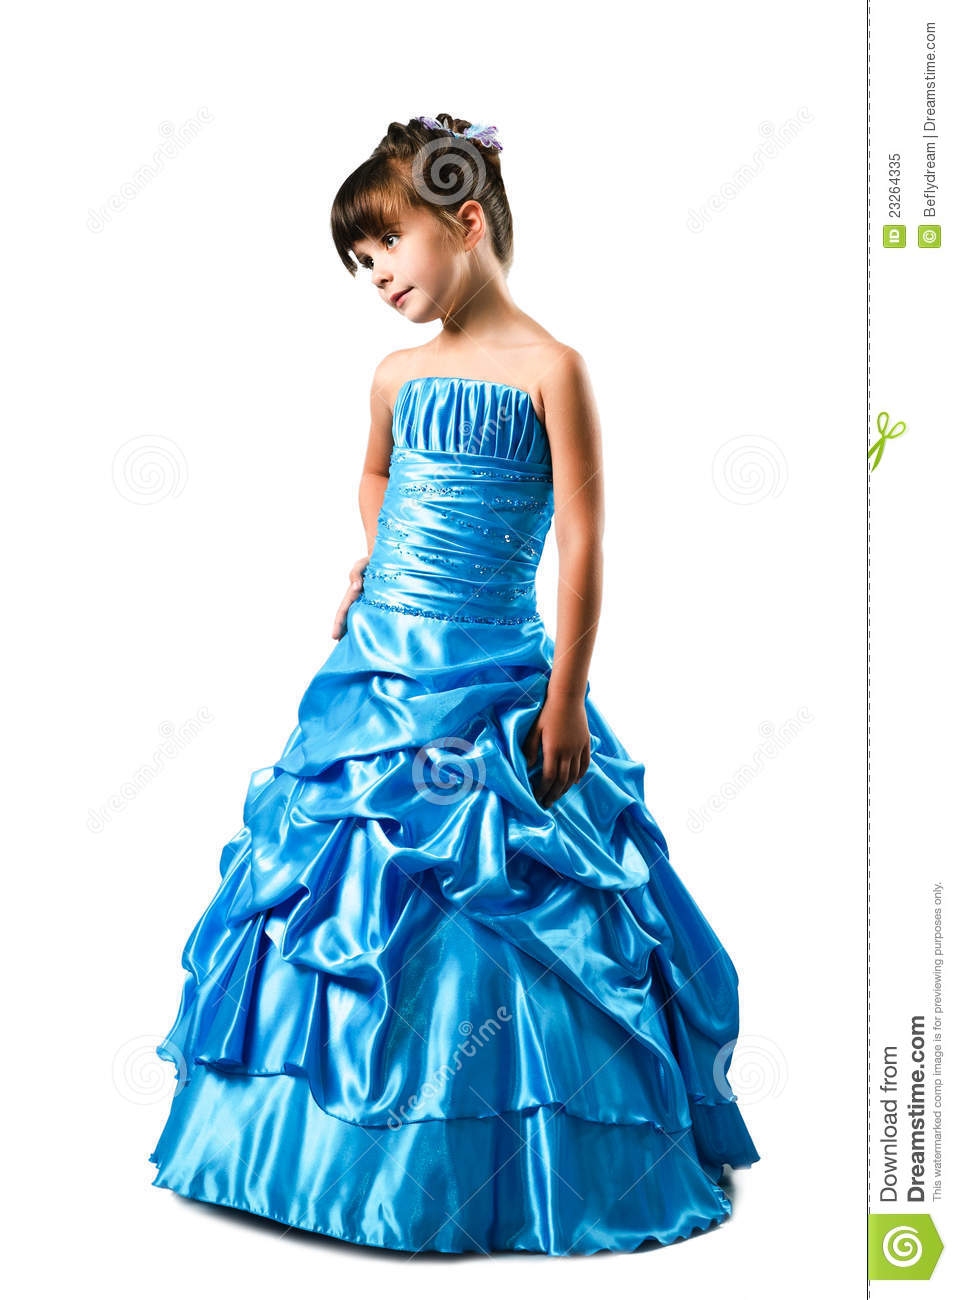 Fancy Dresses For Little Girls